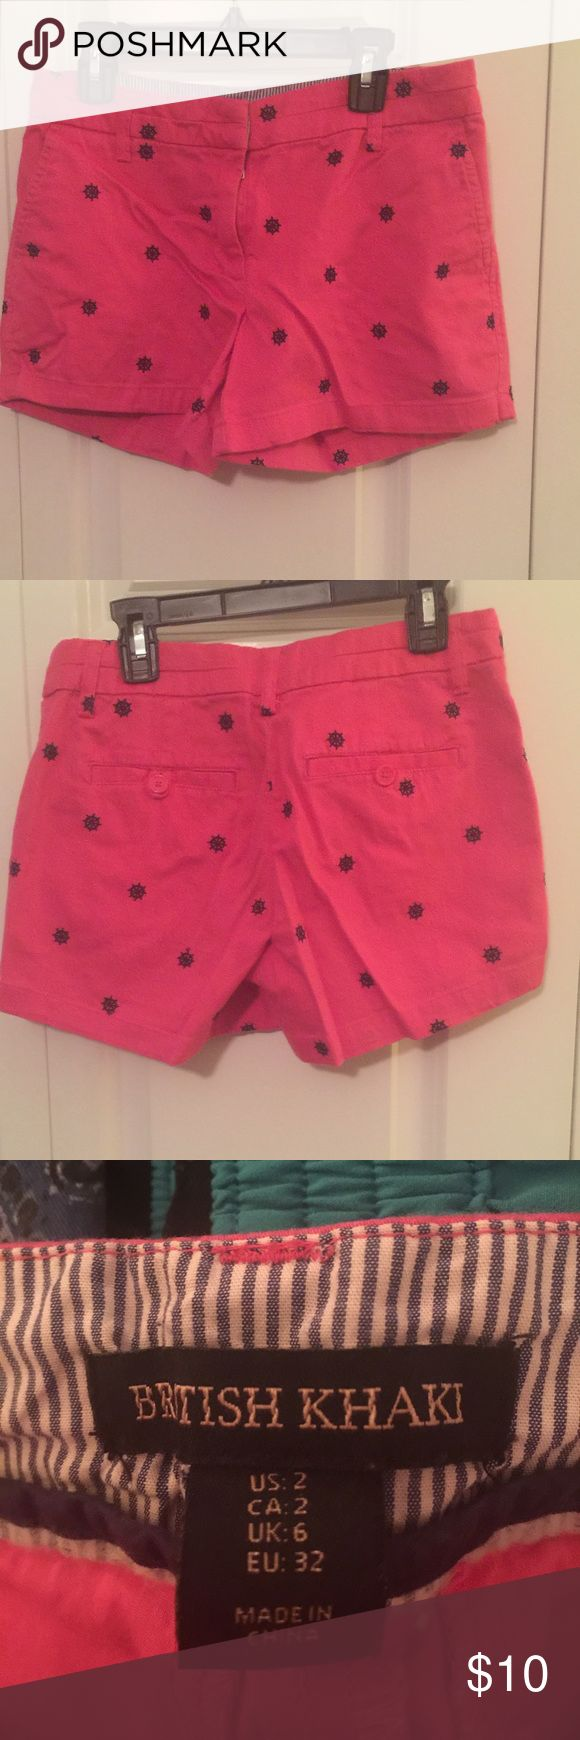 British Khaki Shorts Pink with Blue British Khaki Shorts